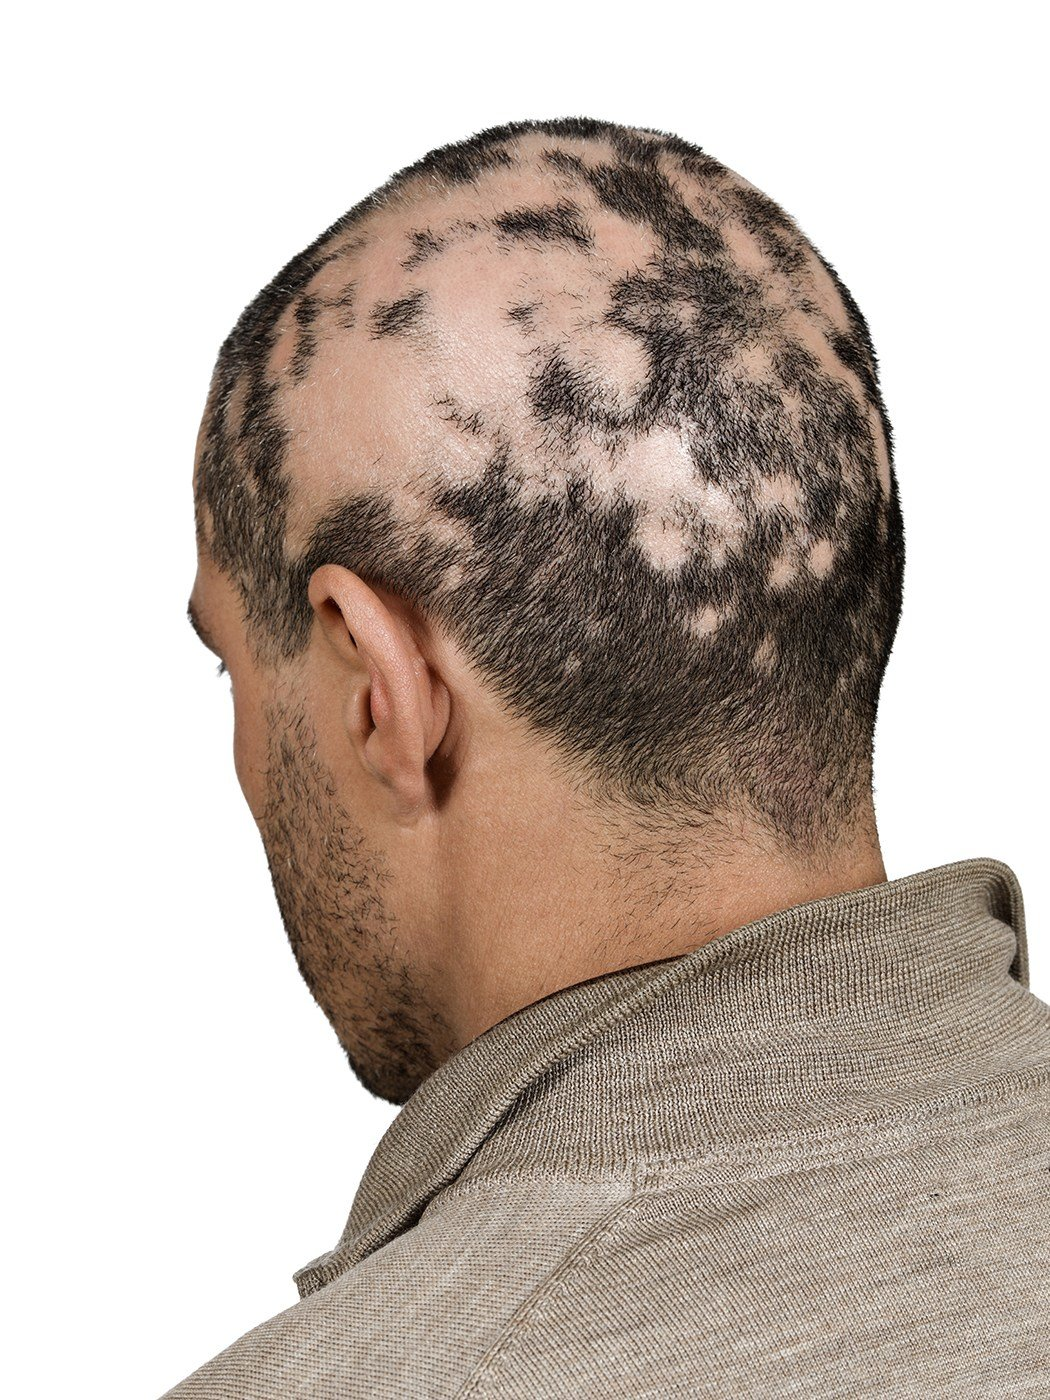 The Best Hair Toppiks Hair Regrowth For Men And Hair Loss Options Pictures